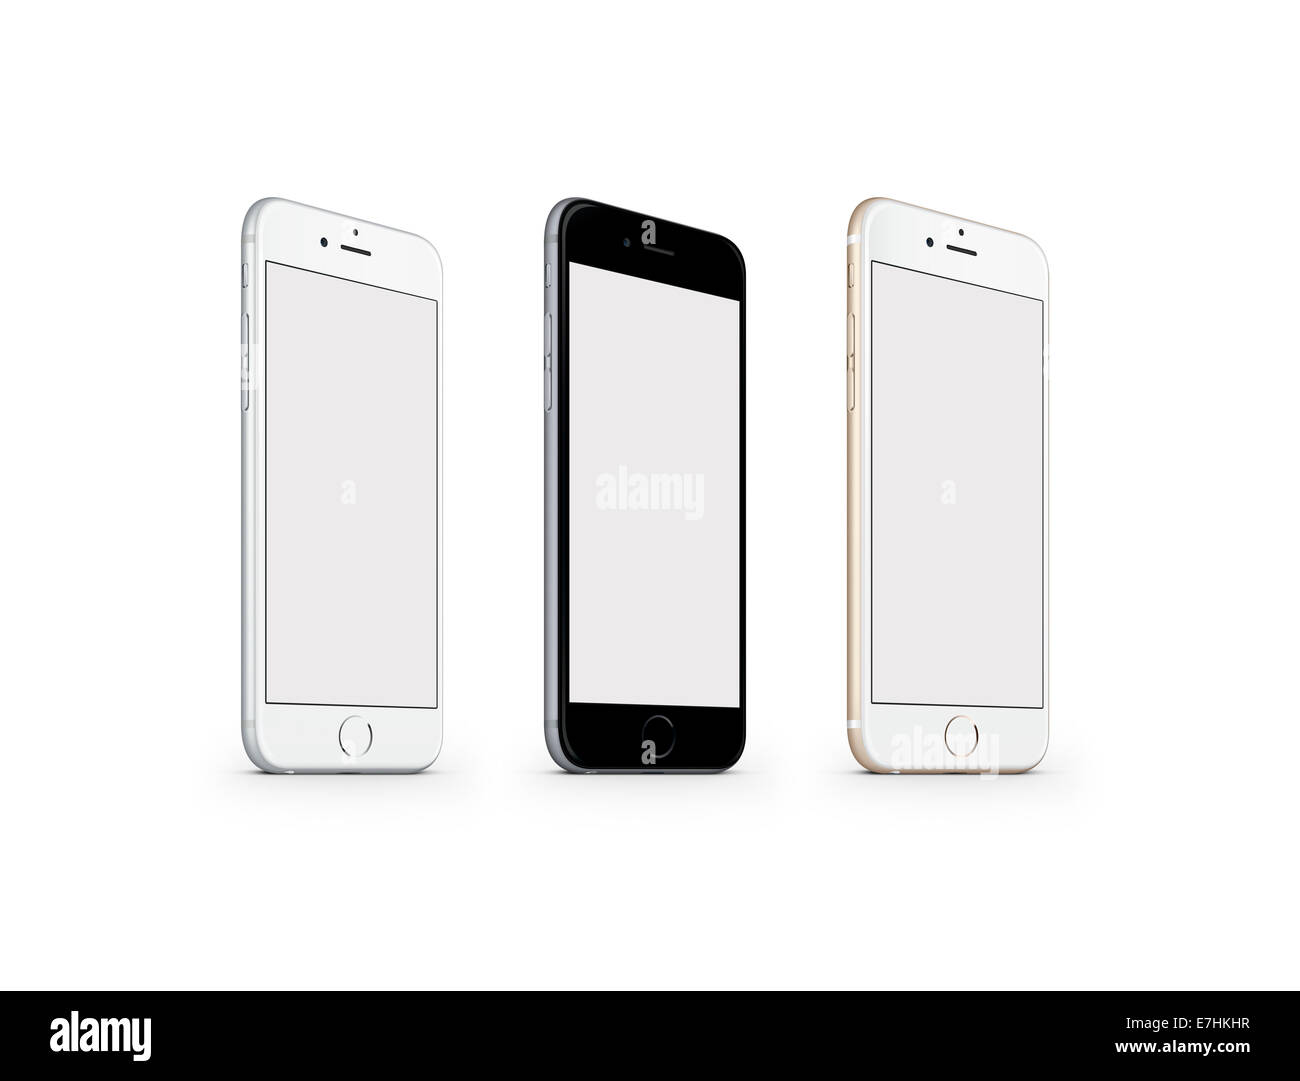 Digitally generated image of cell phones, iphone 6 space gray, gold and silver. - Stock Image